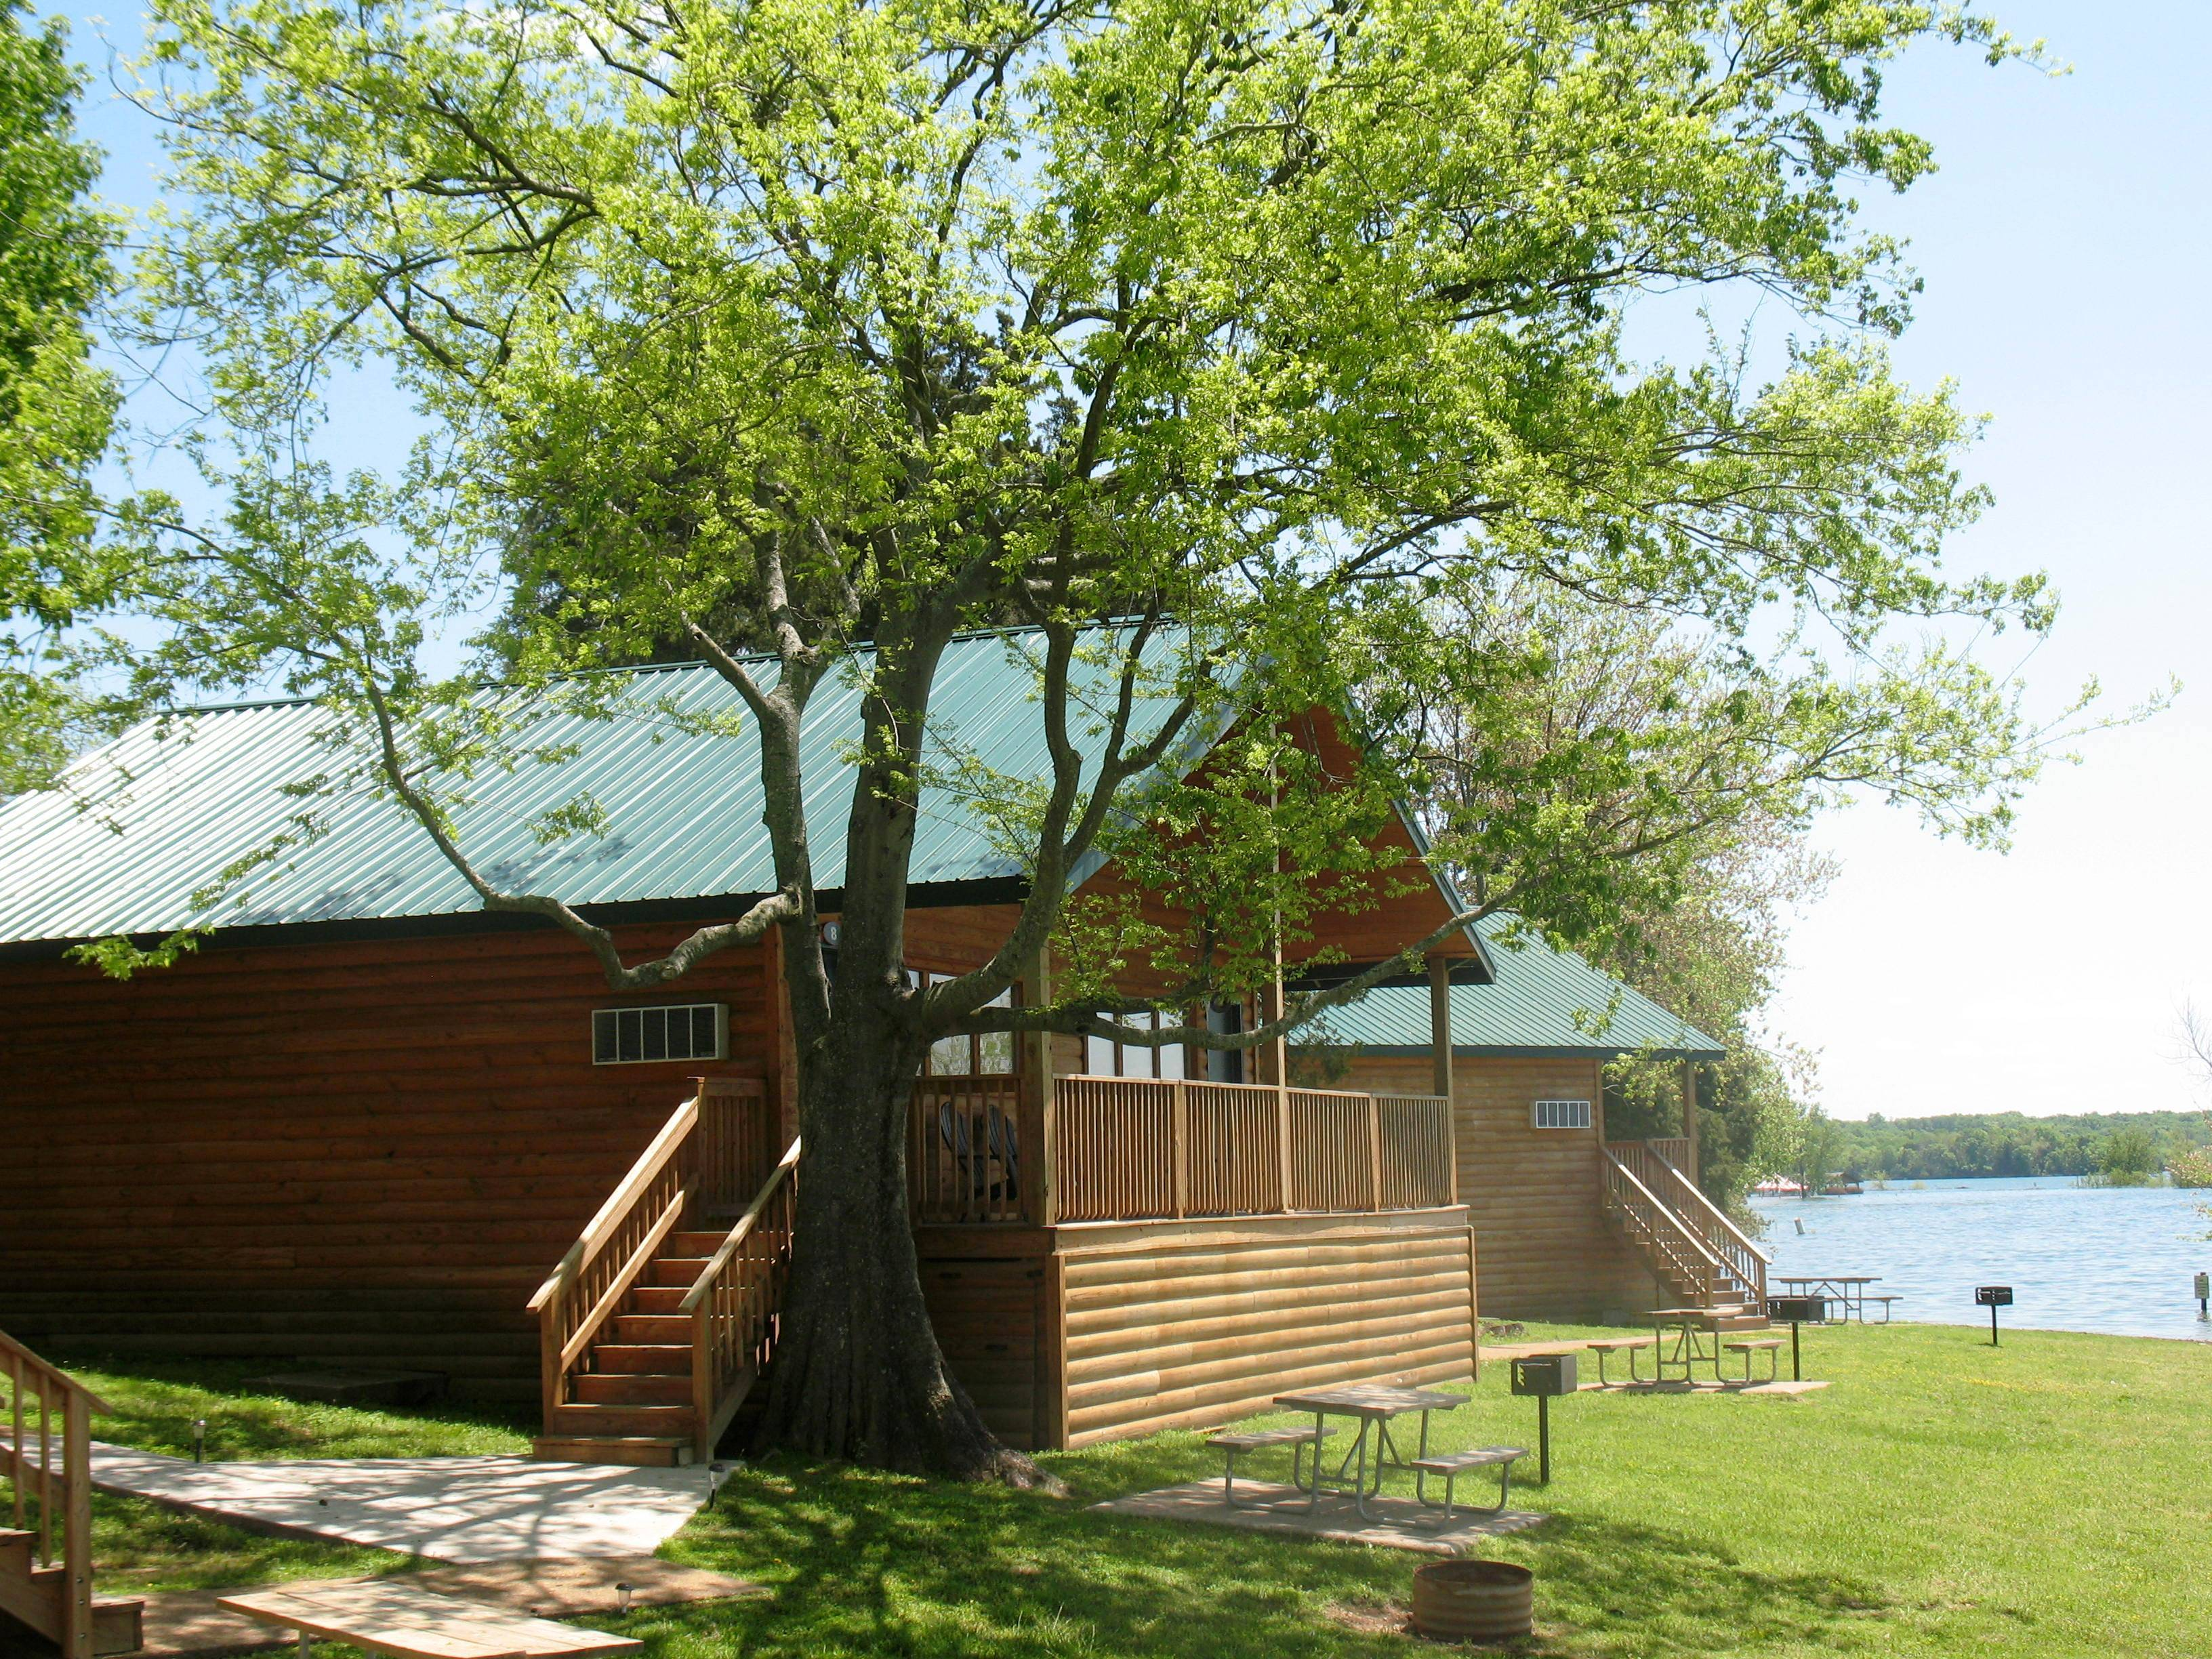 Nashilee Shores Lakeside Resort - Cabin